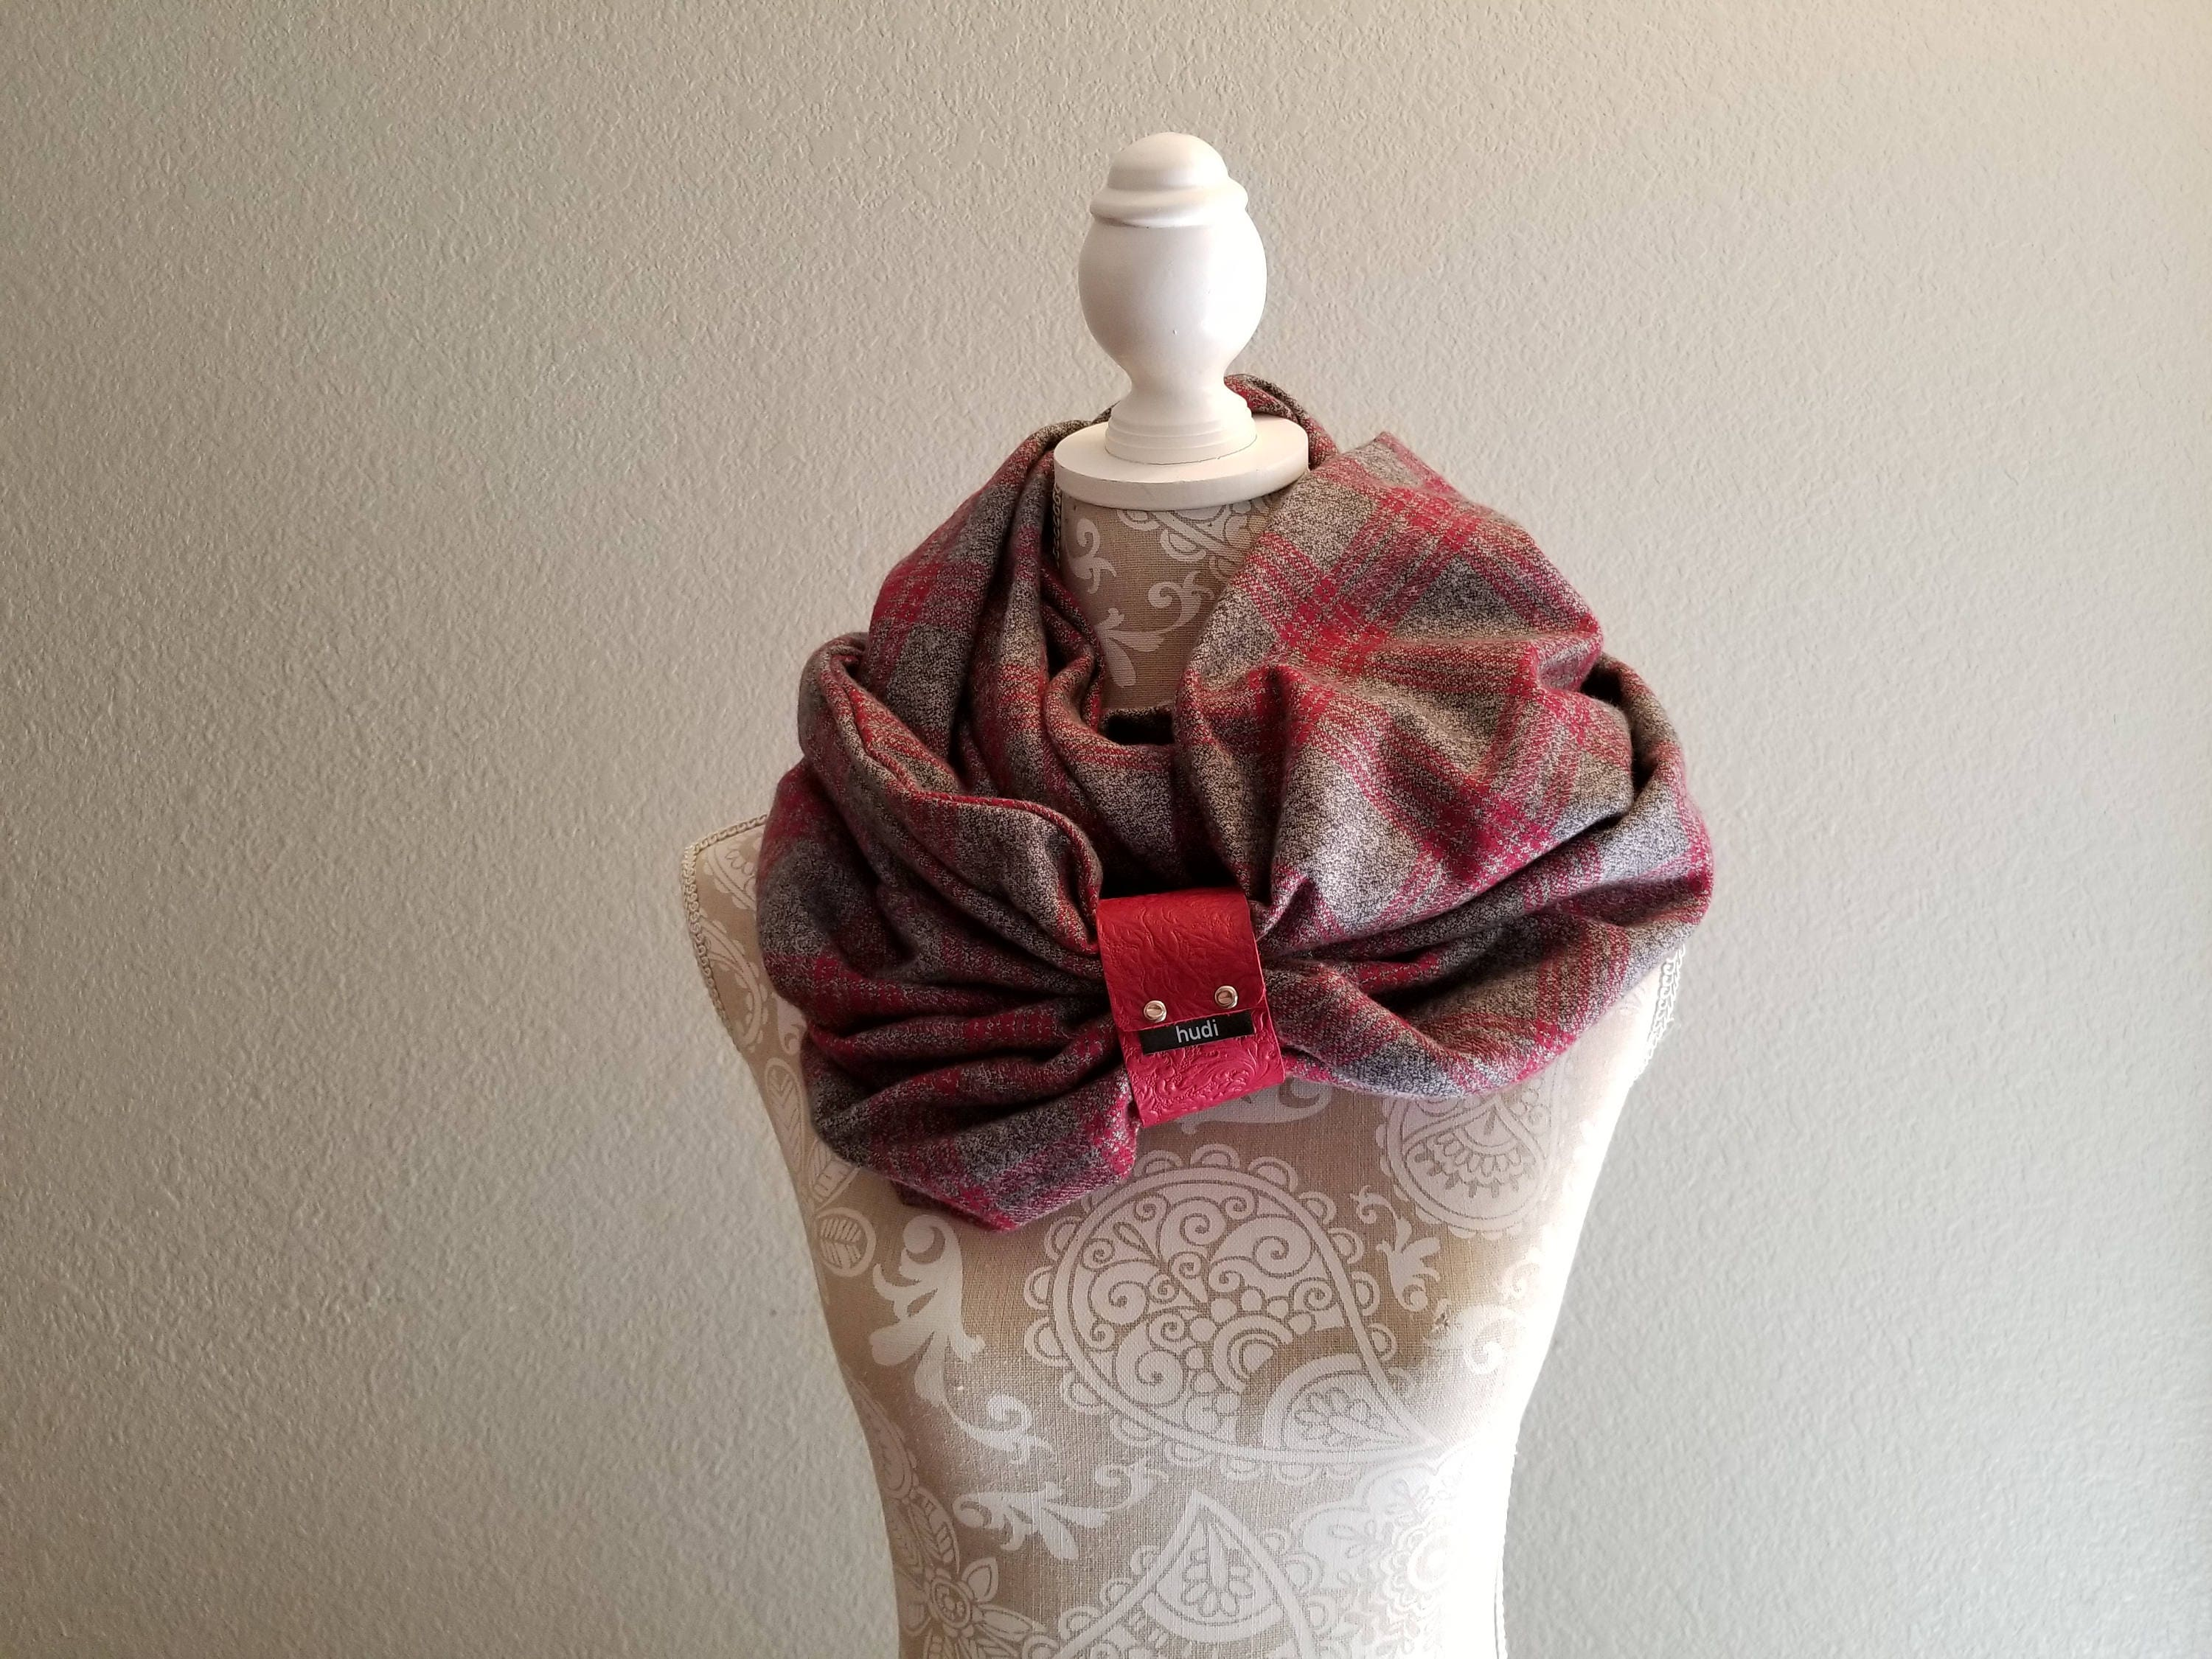 infinity scarf for women with leather cuff womens winter accessory plaid scarf leather - Christmas Plaid Scarf